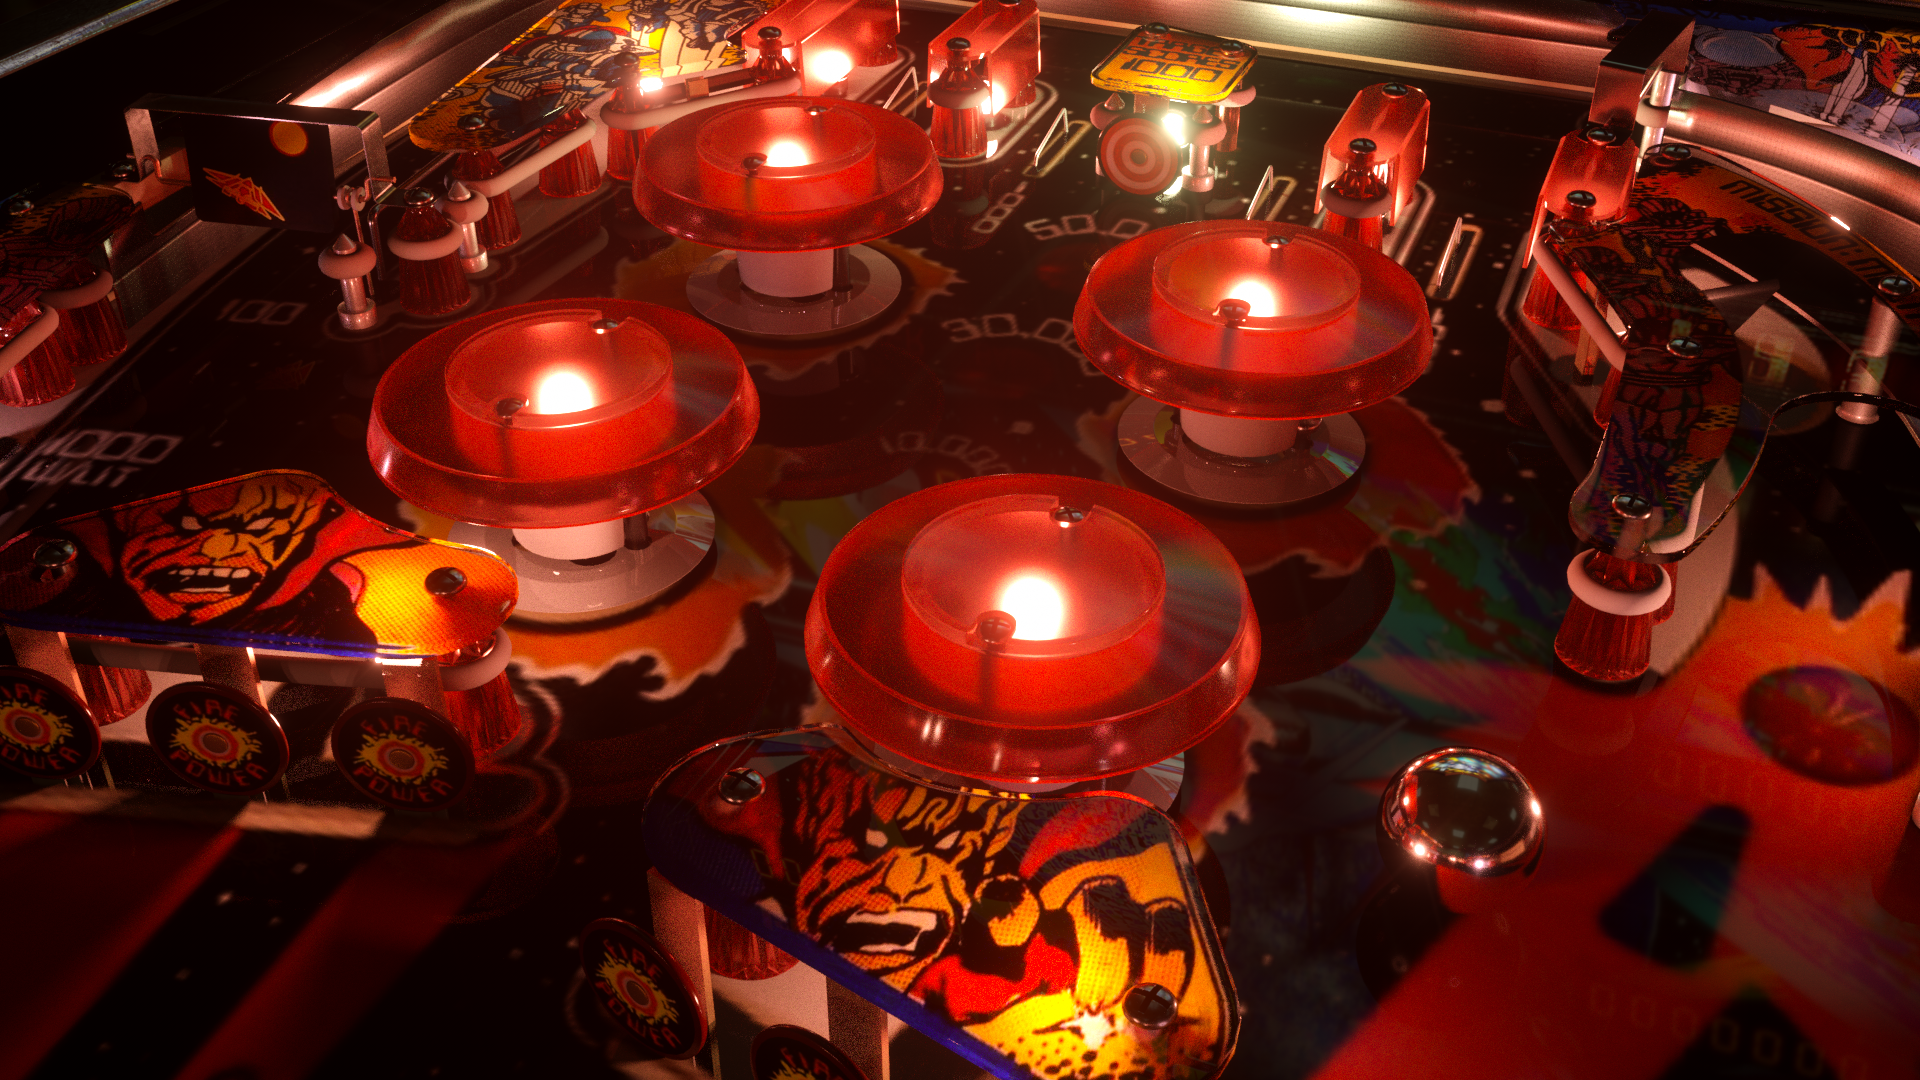 Pinball machine shading: plastic